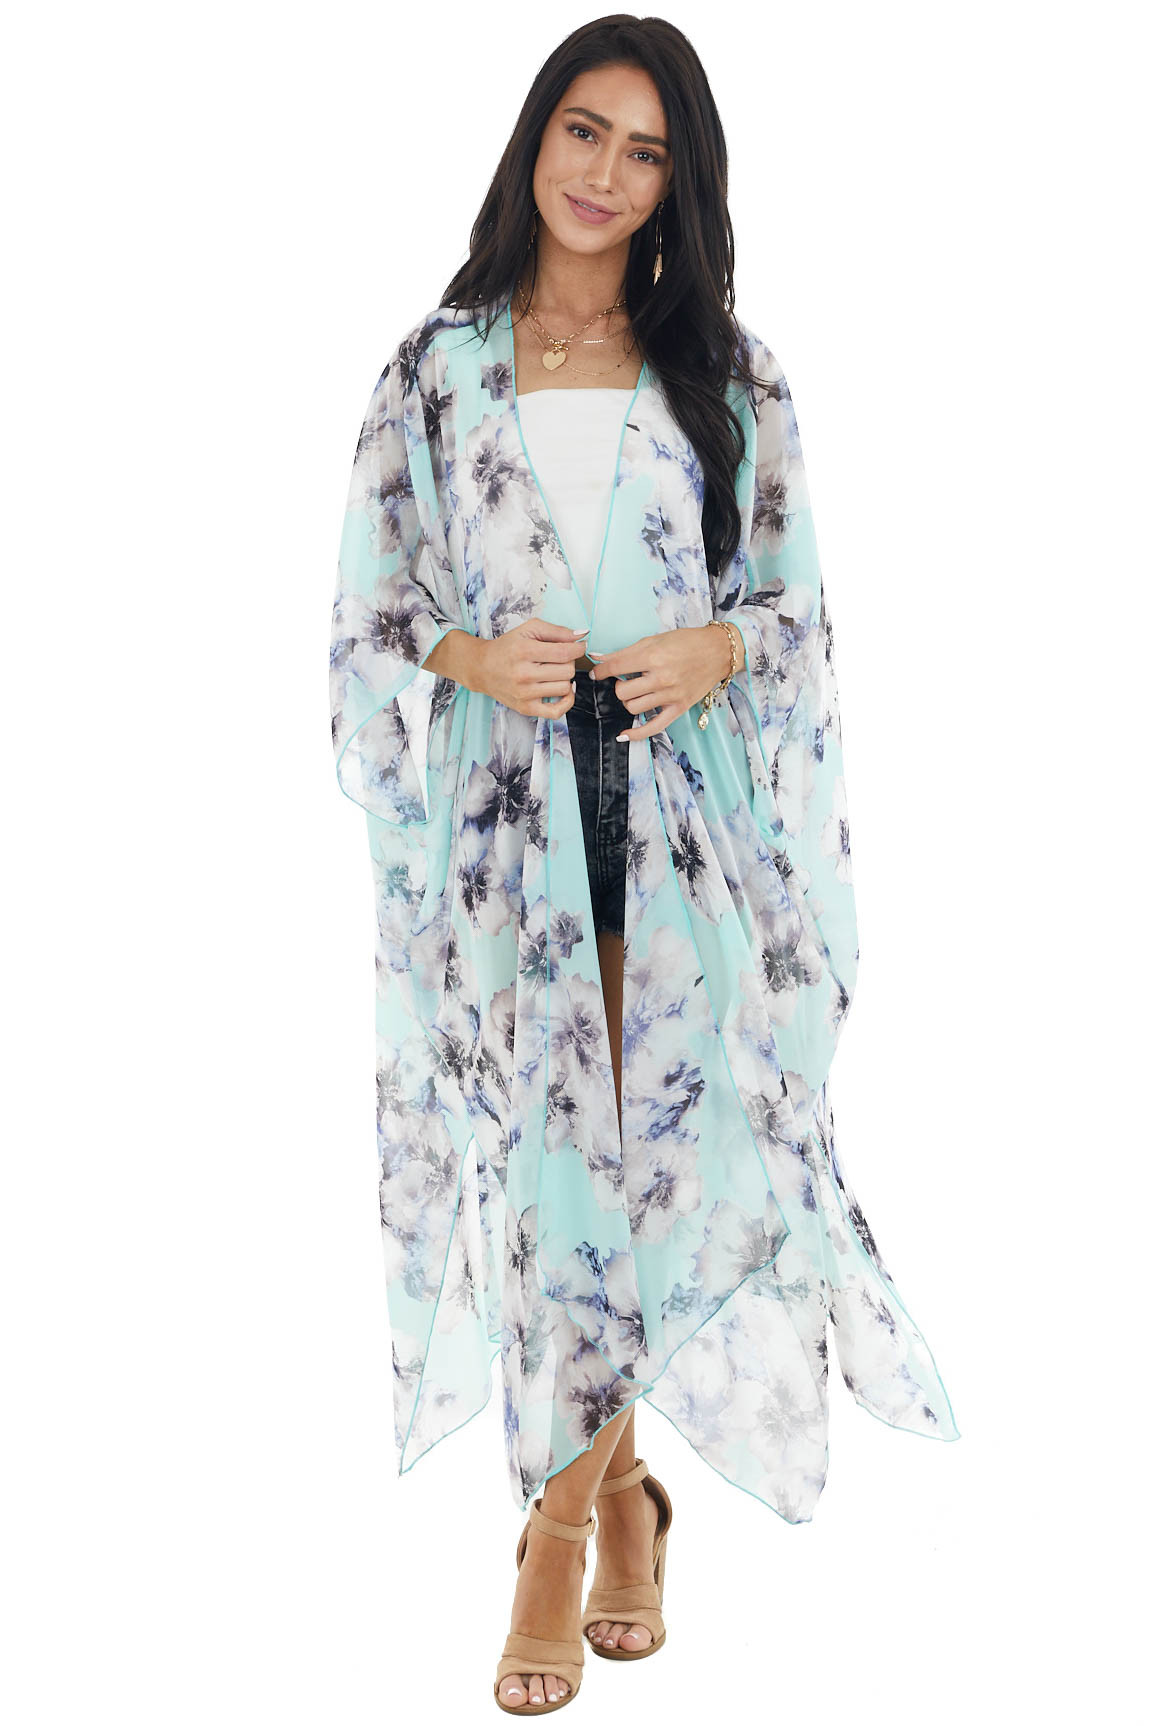 Mint Floral Print Short Sleeve Kimono with Side Slits